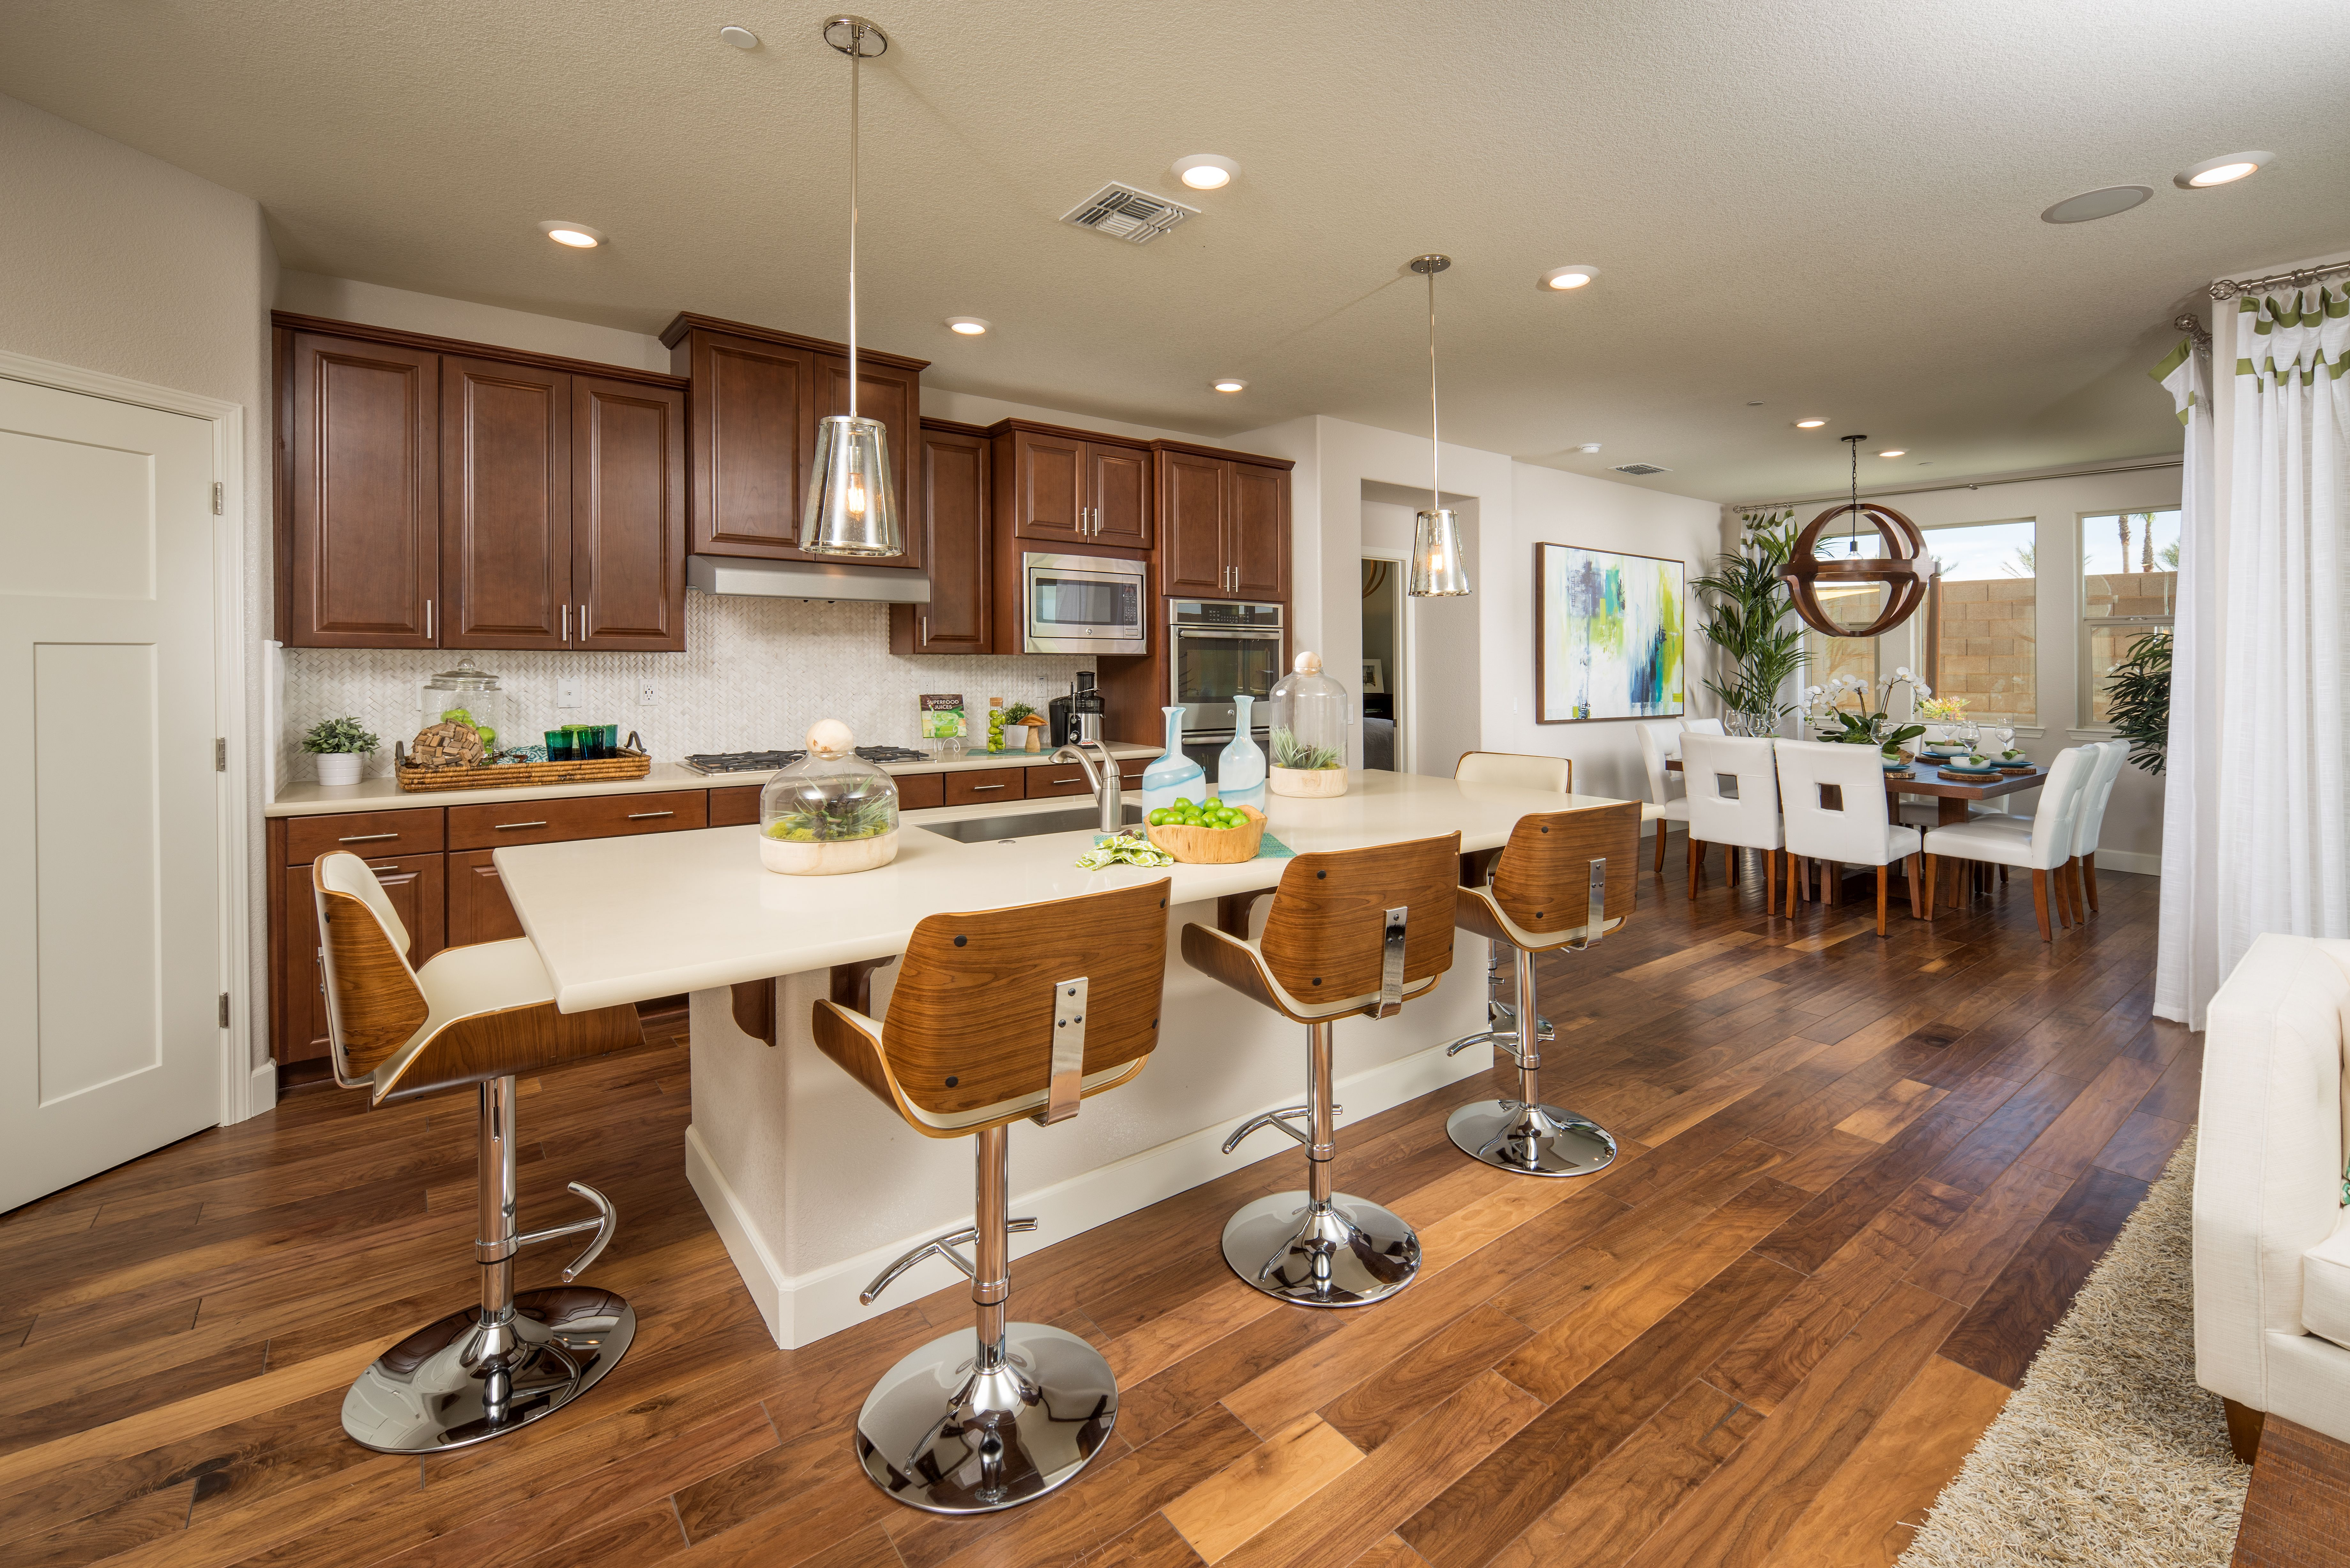 How Would You Rate A Kitchen This Style Model Home Now Selling House Interior Home Dream House